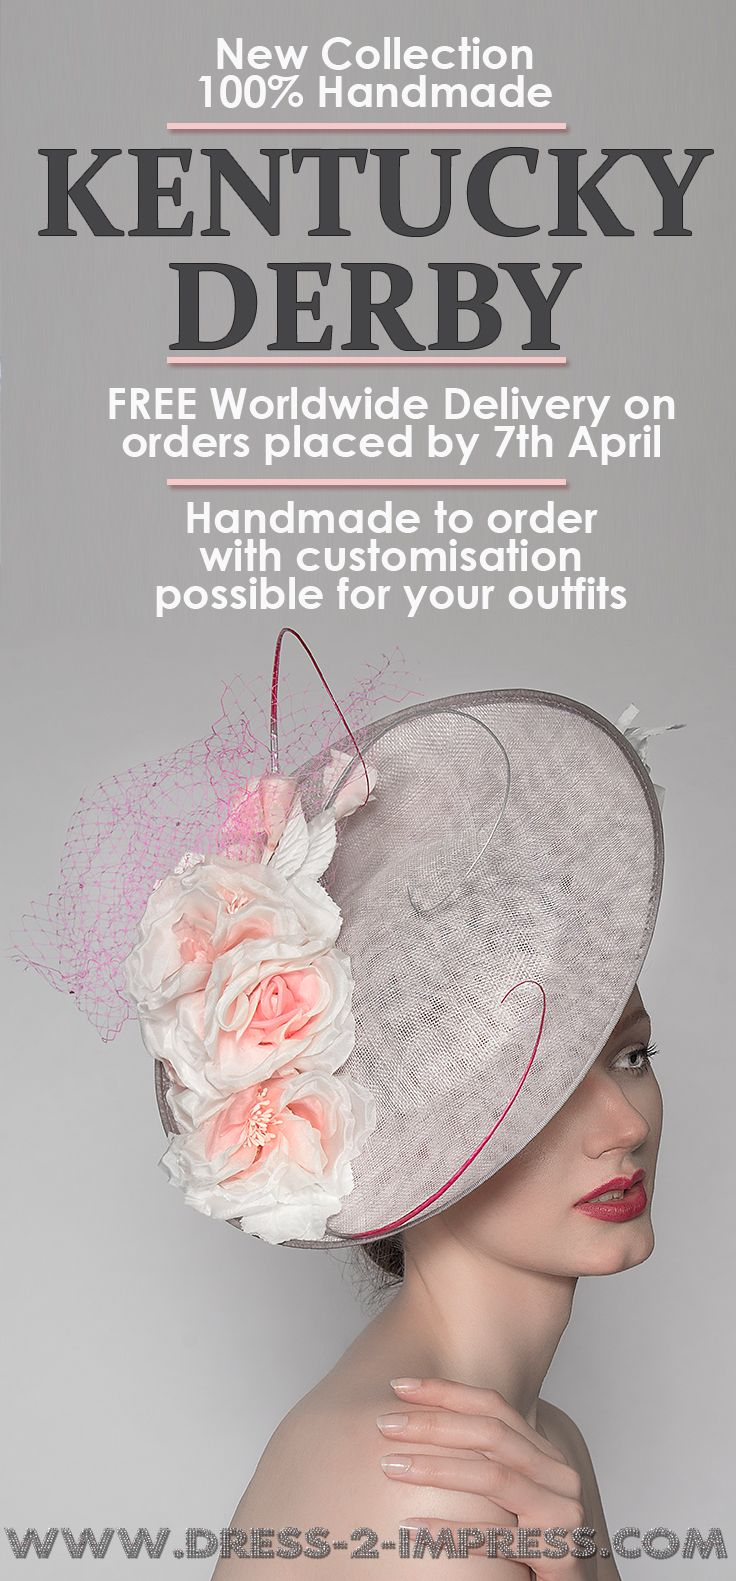 New Kentucky Derby Hats Collection. Handmade in the UK, with Free Worldwide shipping on orders between 18th Feb and 7th April. Have yours Custom Made for your outfit. Designer Hats for the races. Kentucky Derby Racing Day fashion outfits ideas and inspiration. #kentuckyderby #derbyoutfits #derbyhats #fashion #passion4hats #racingfashion